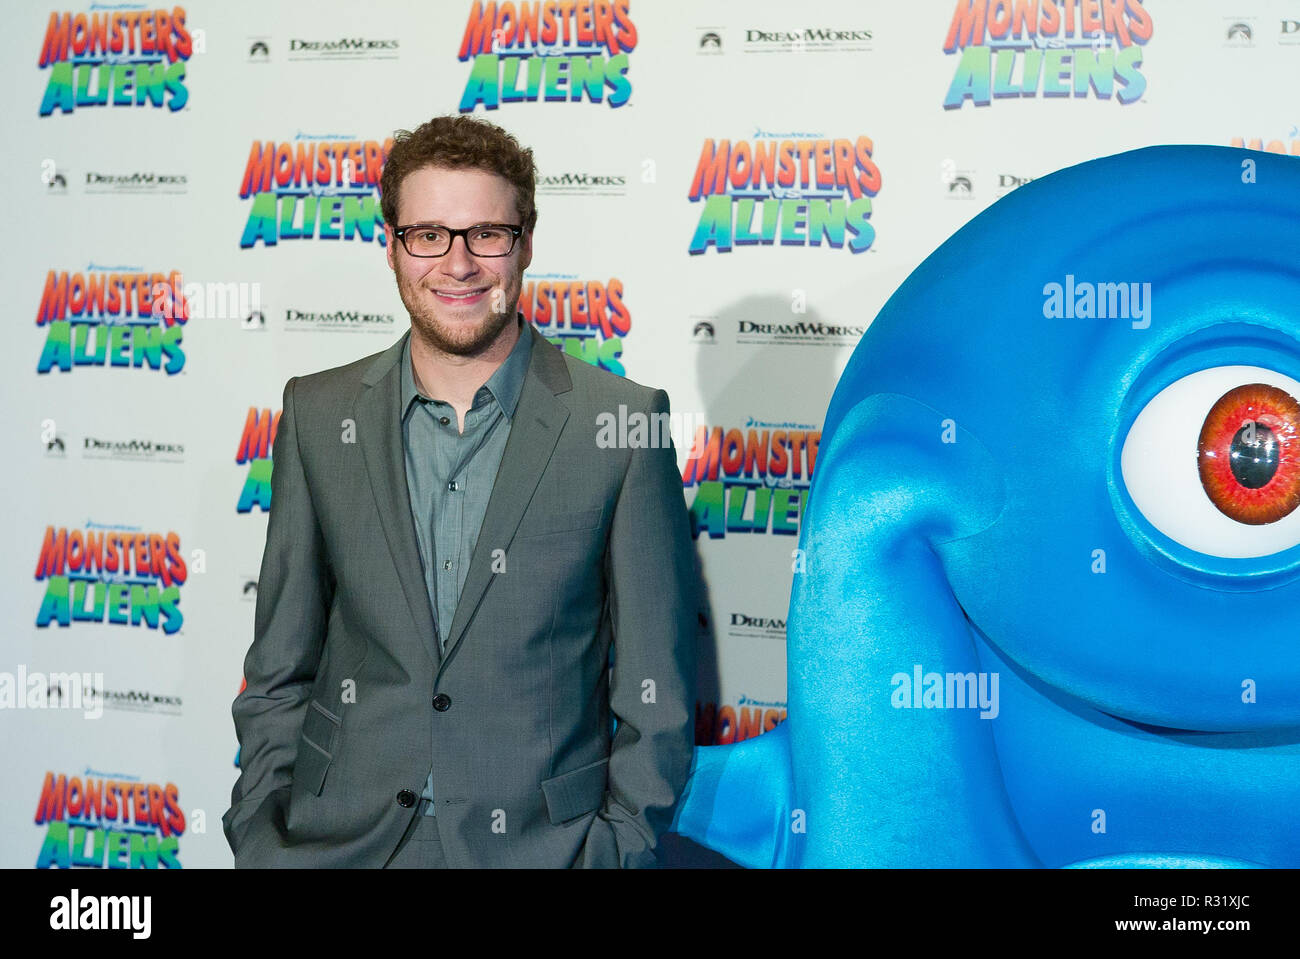 The 'Monsters Vs Aliens' movie premiere at the Greater Union George Street Cinema on March 5, 2009 in Sydney, Australia. Pictured: Seth Rogen. - Stock Image